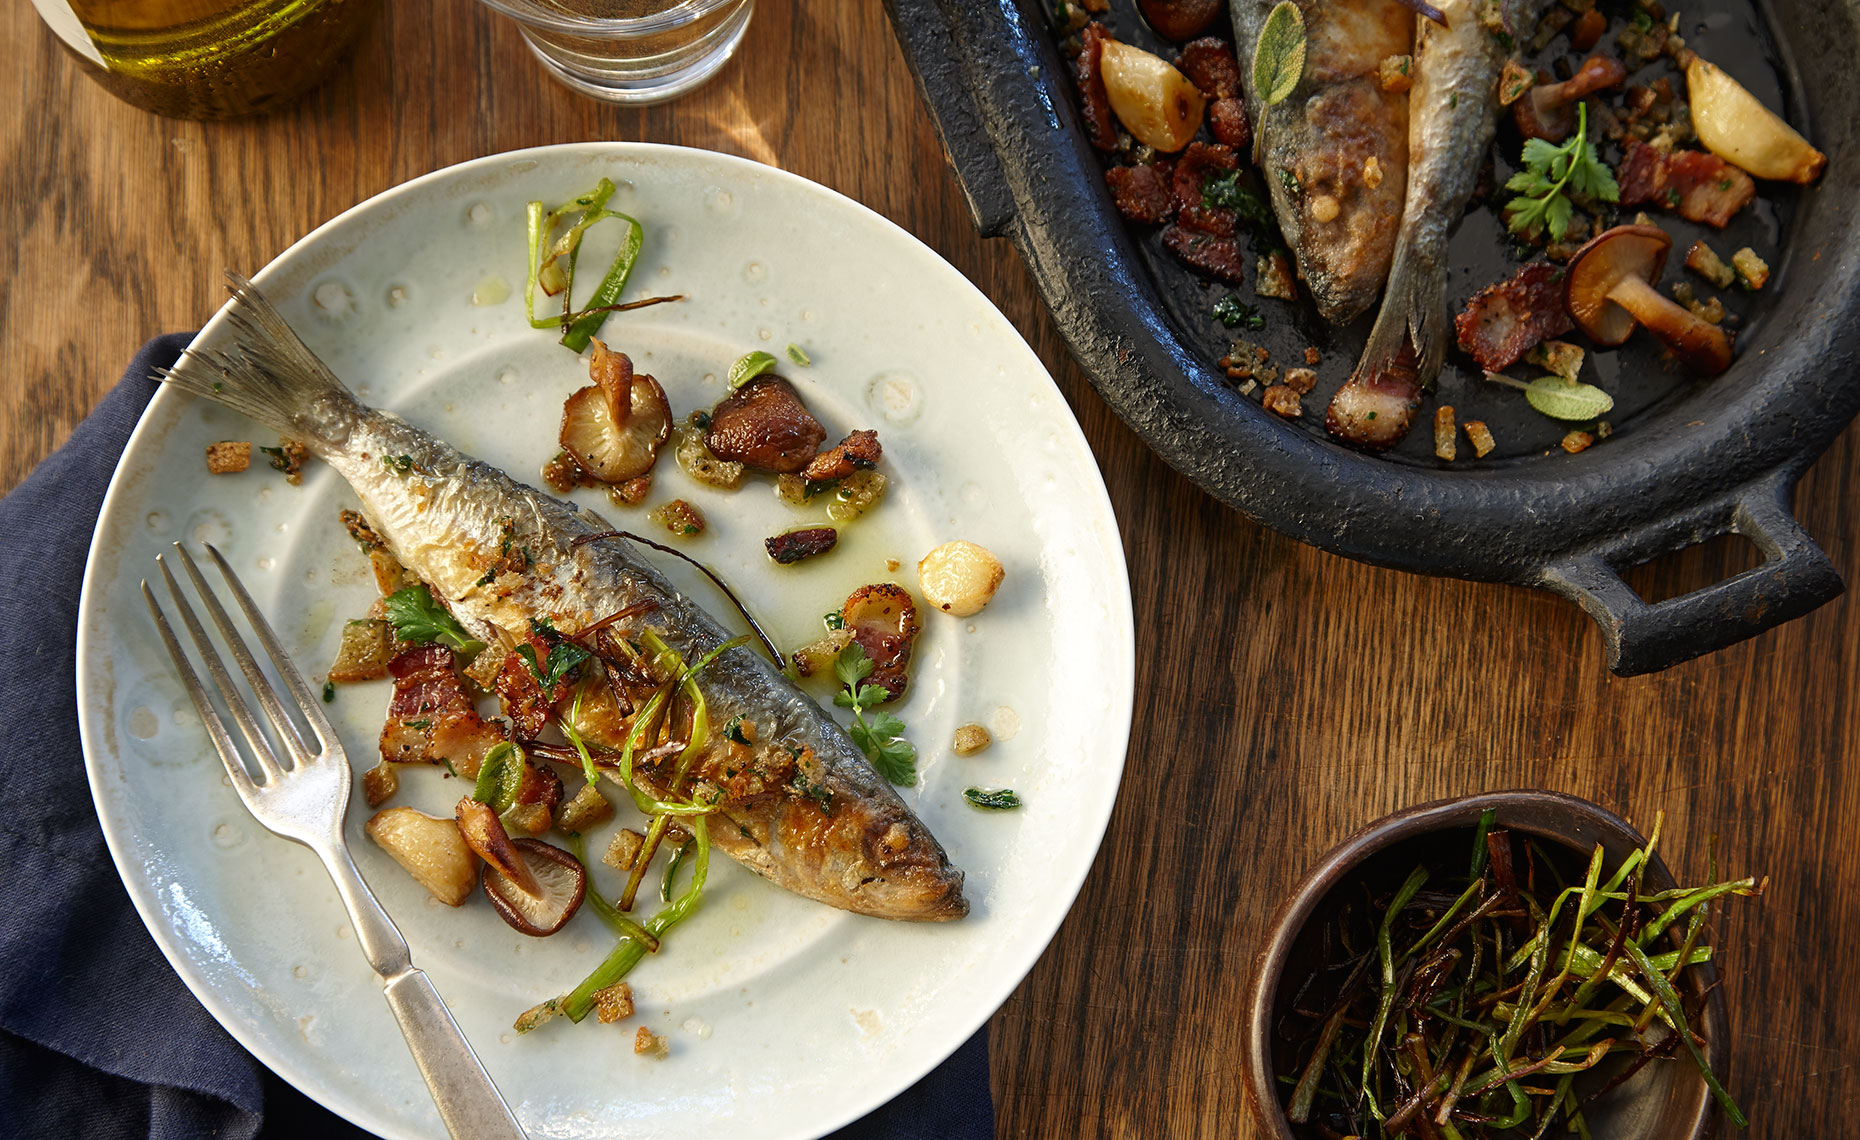 Food Photographer, Seafood Photography | Pohuski Studios,  Grilled Sardines Mushrooms